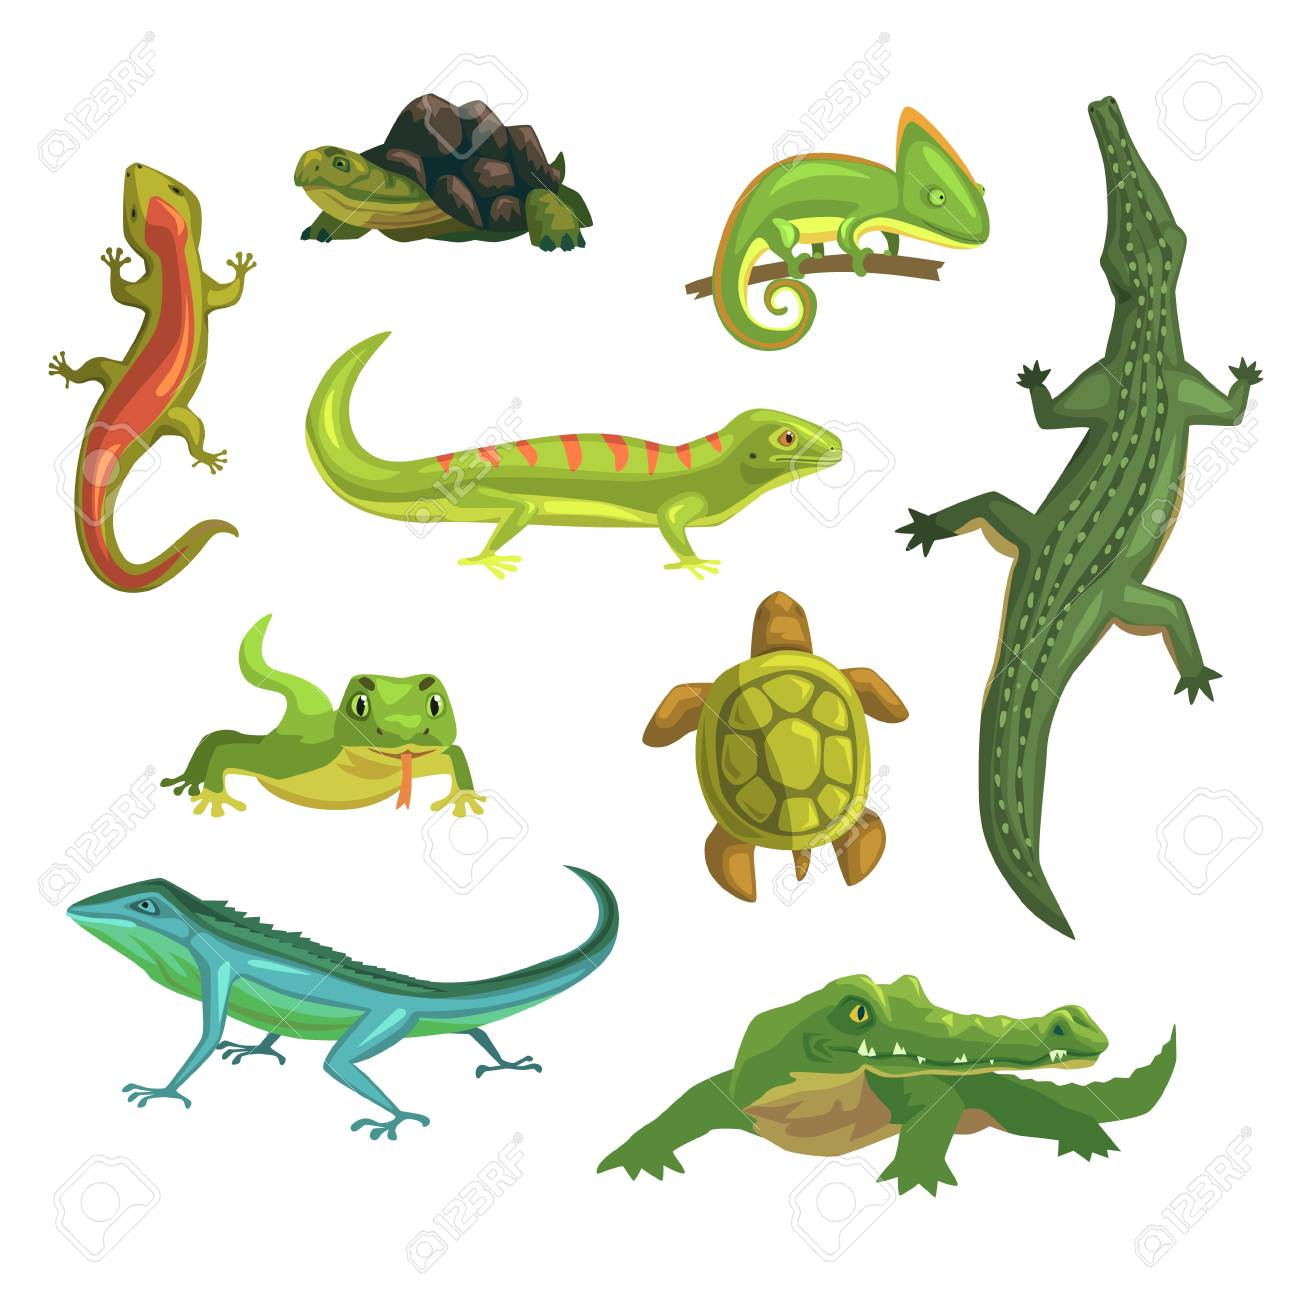 Reptiles and amphibians set of vector Illustrations.